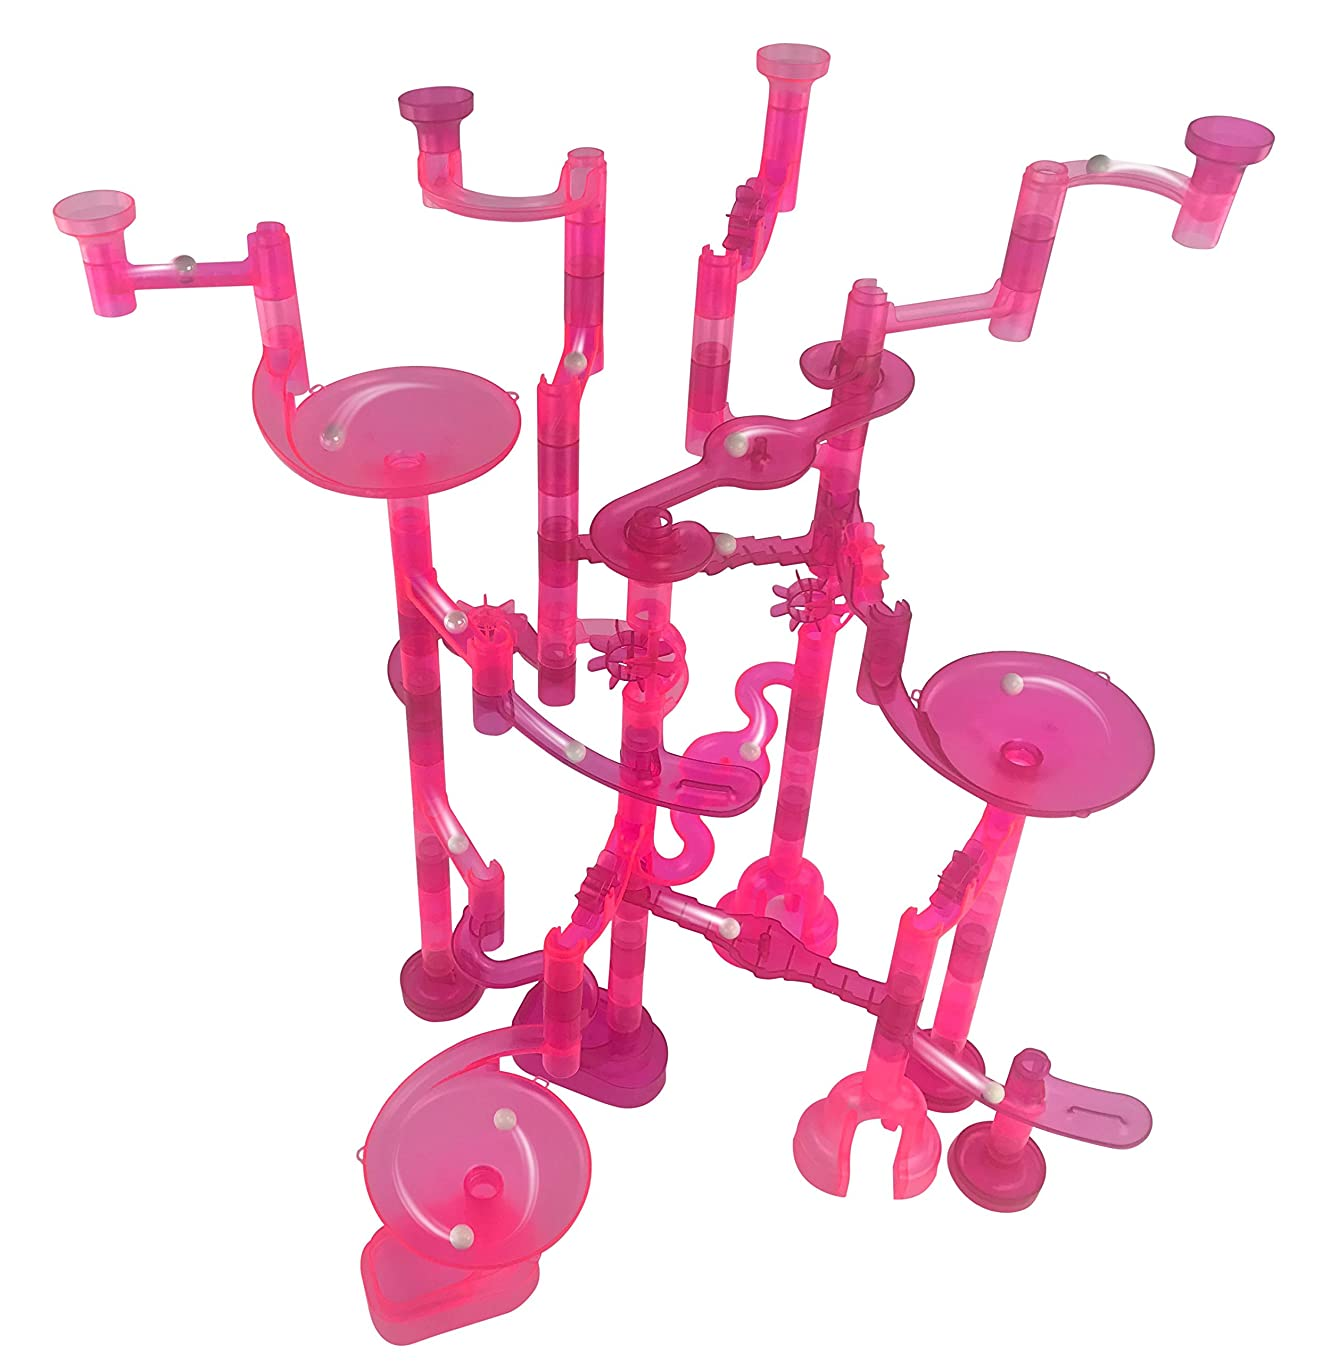 Pinked Out! Marble Run - 100 Pieces: 85 Translucent Marbulous Pieces + 15 Glass Marbles